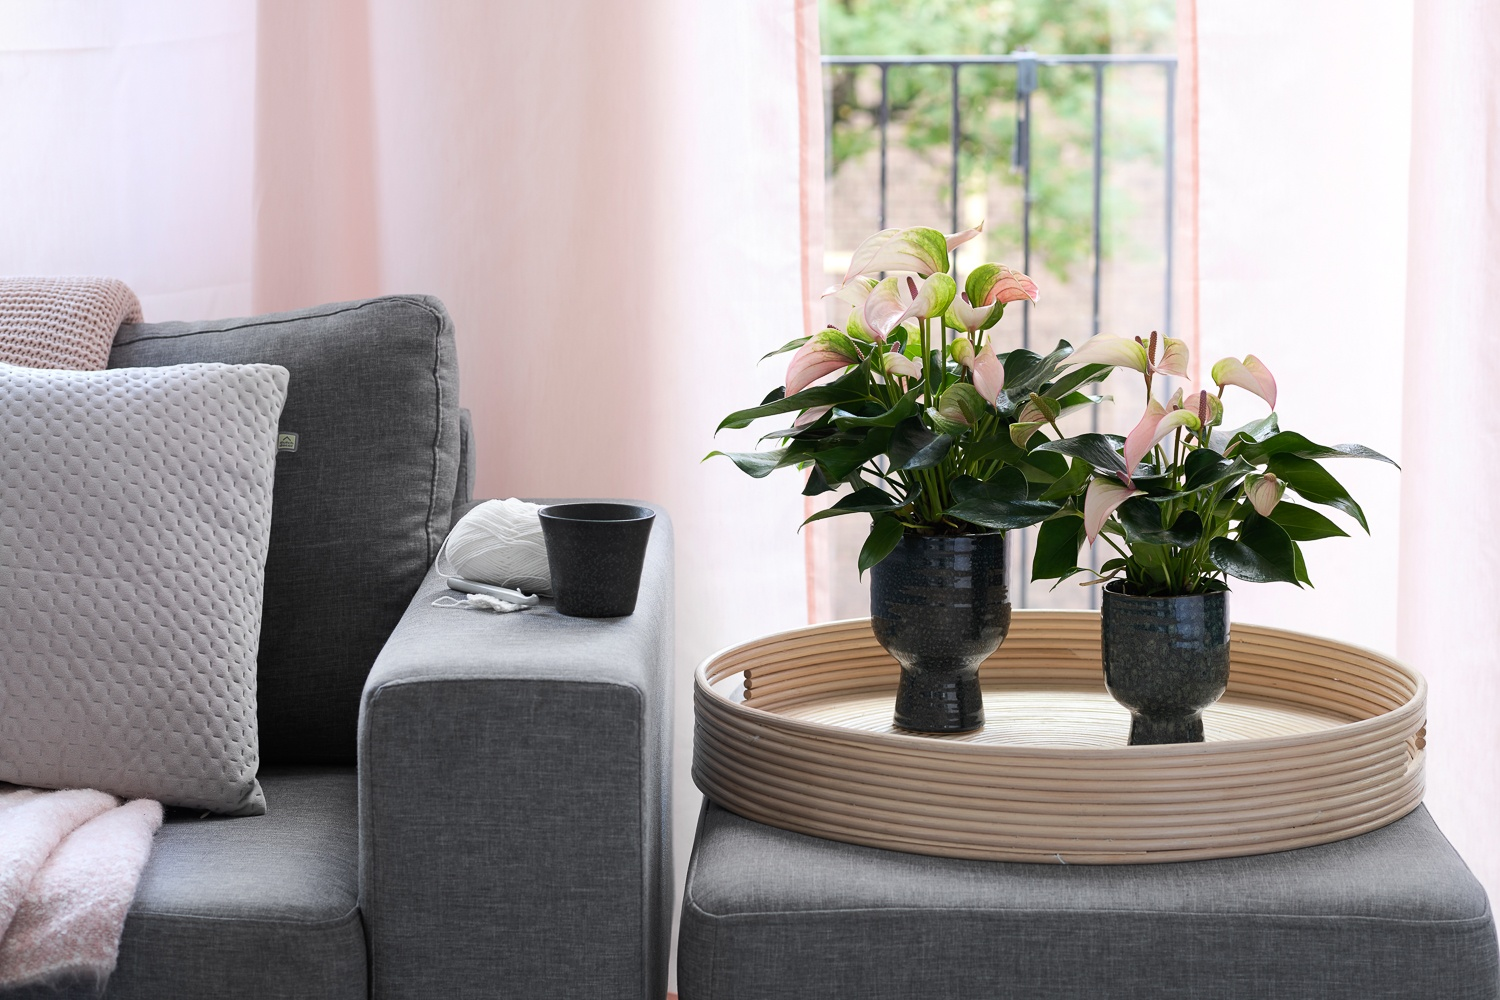 How to move houseplants to your new home